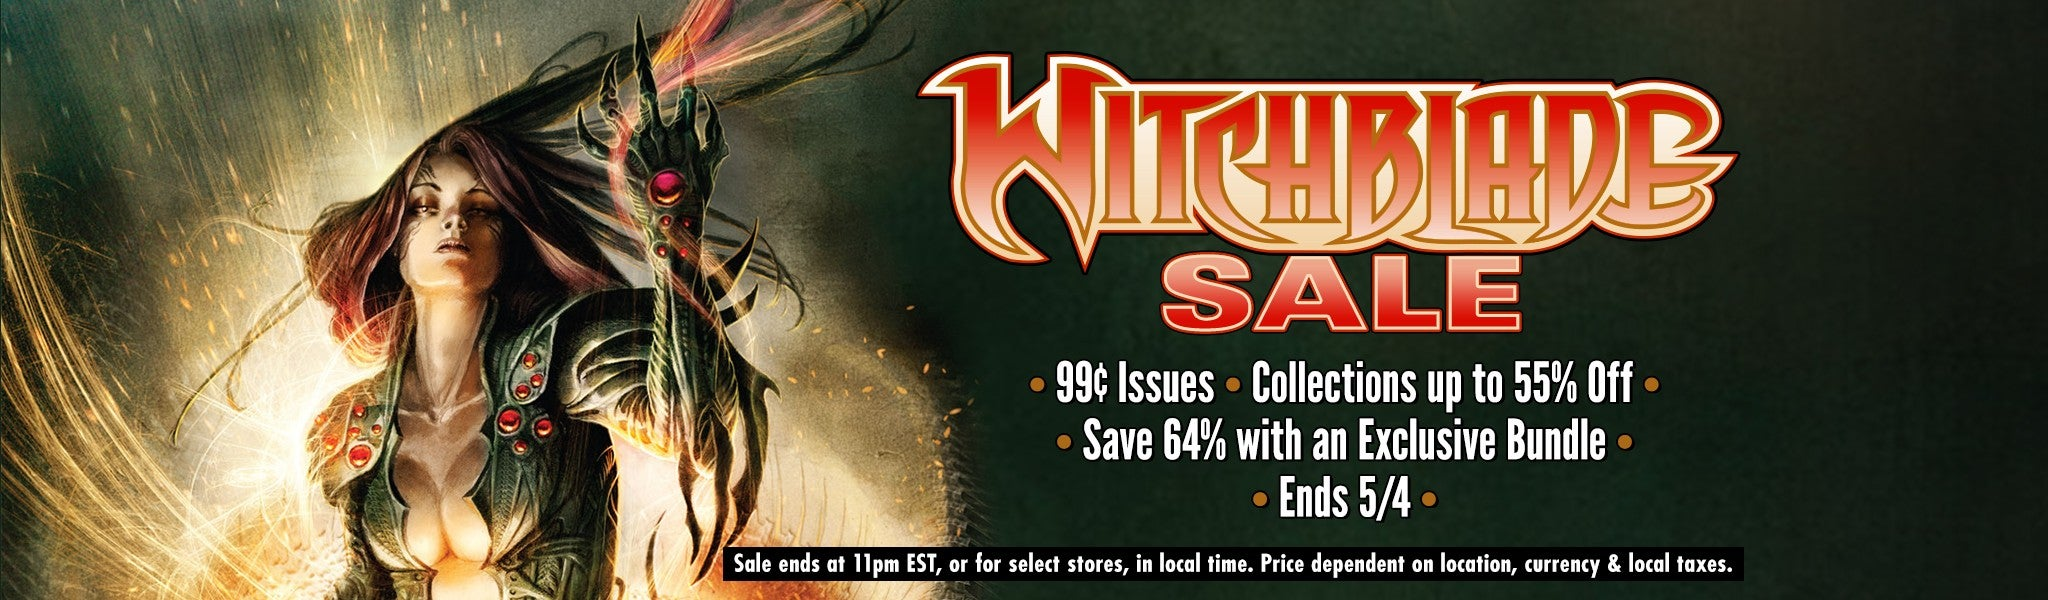 witchblade-sale